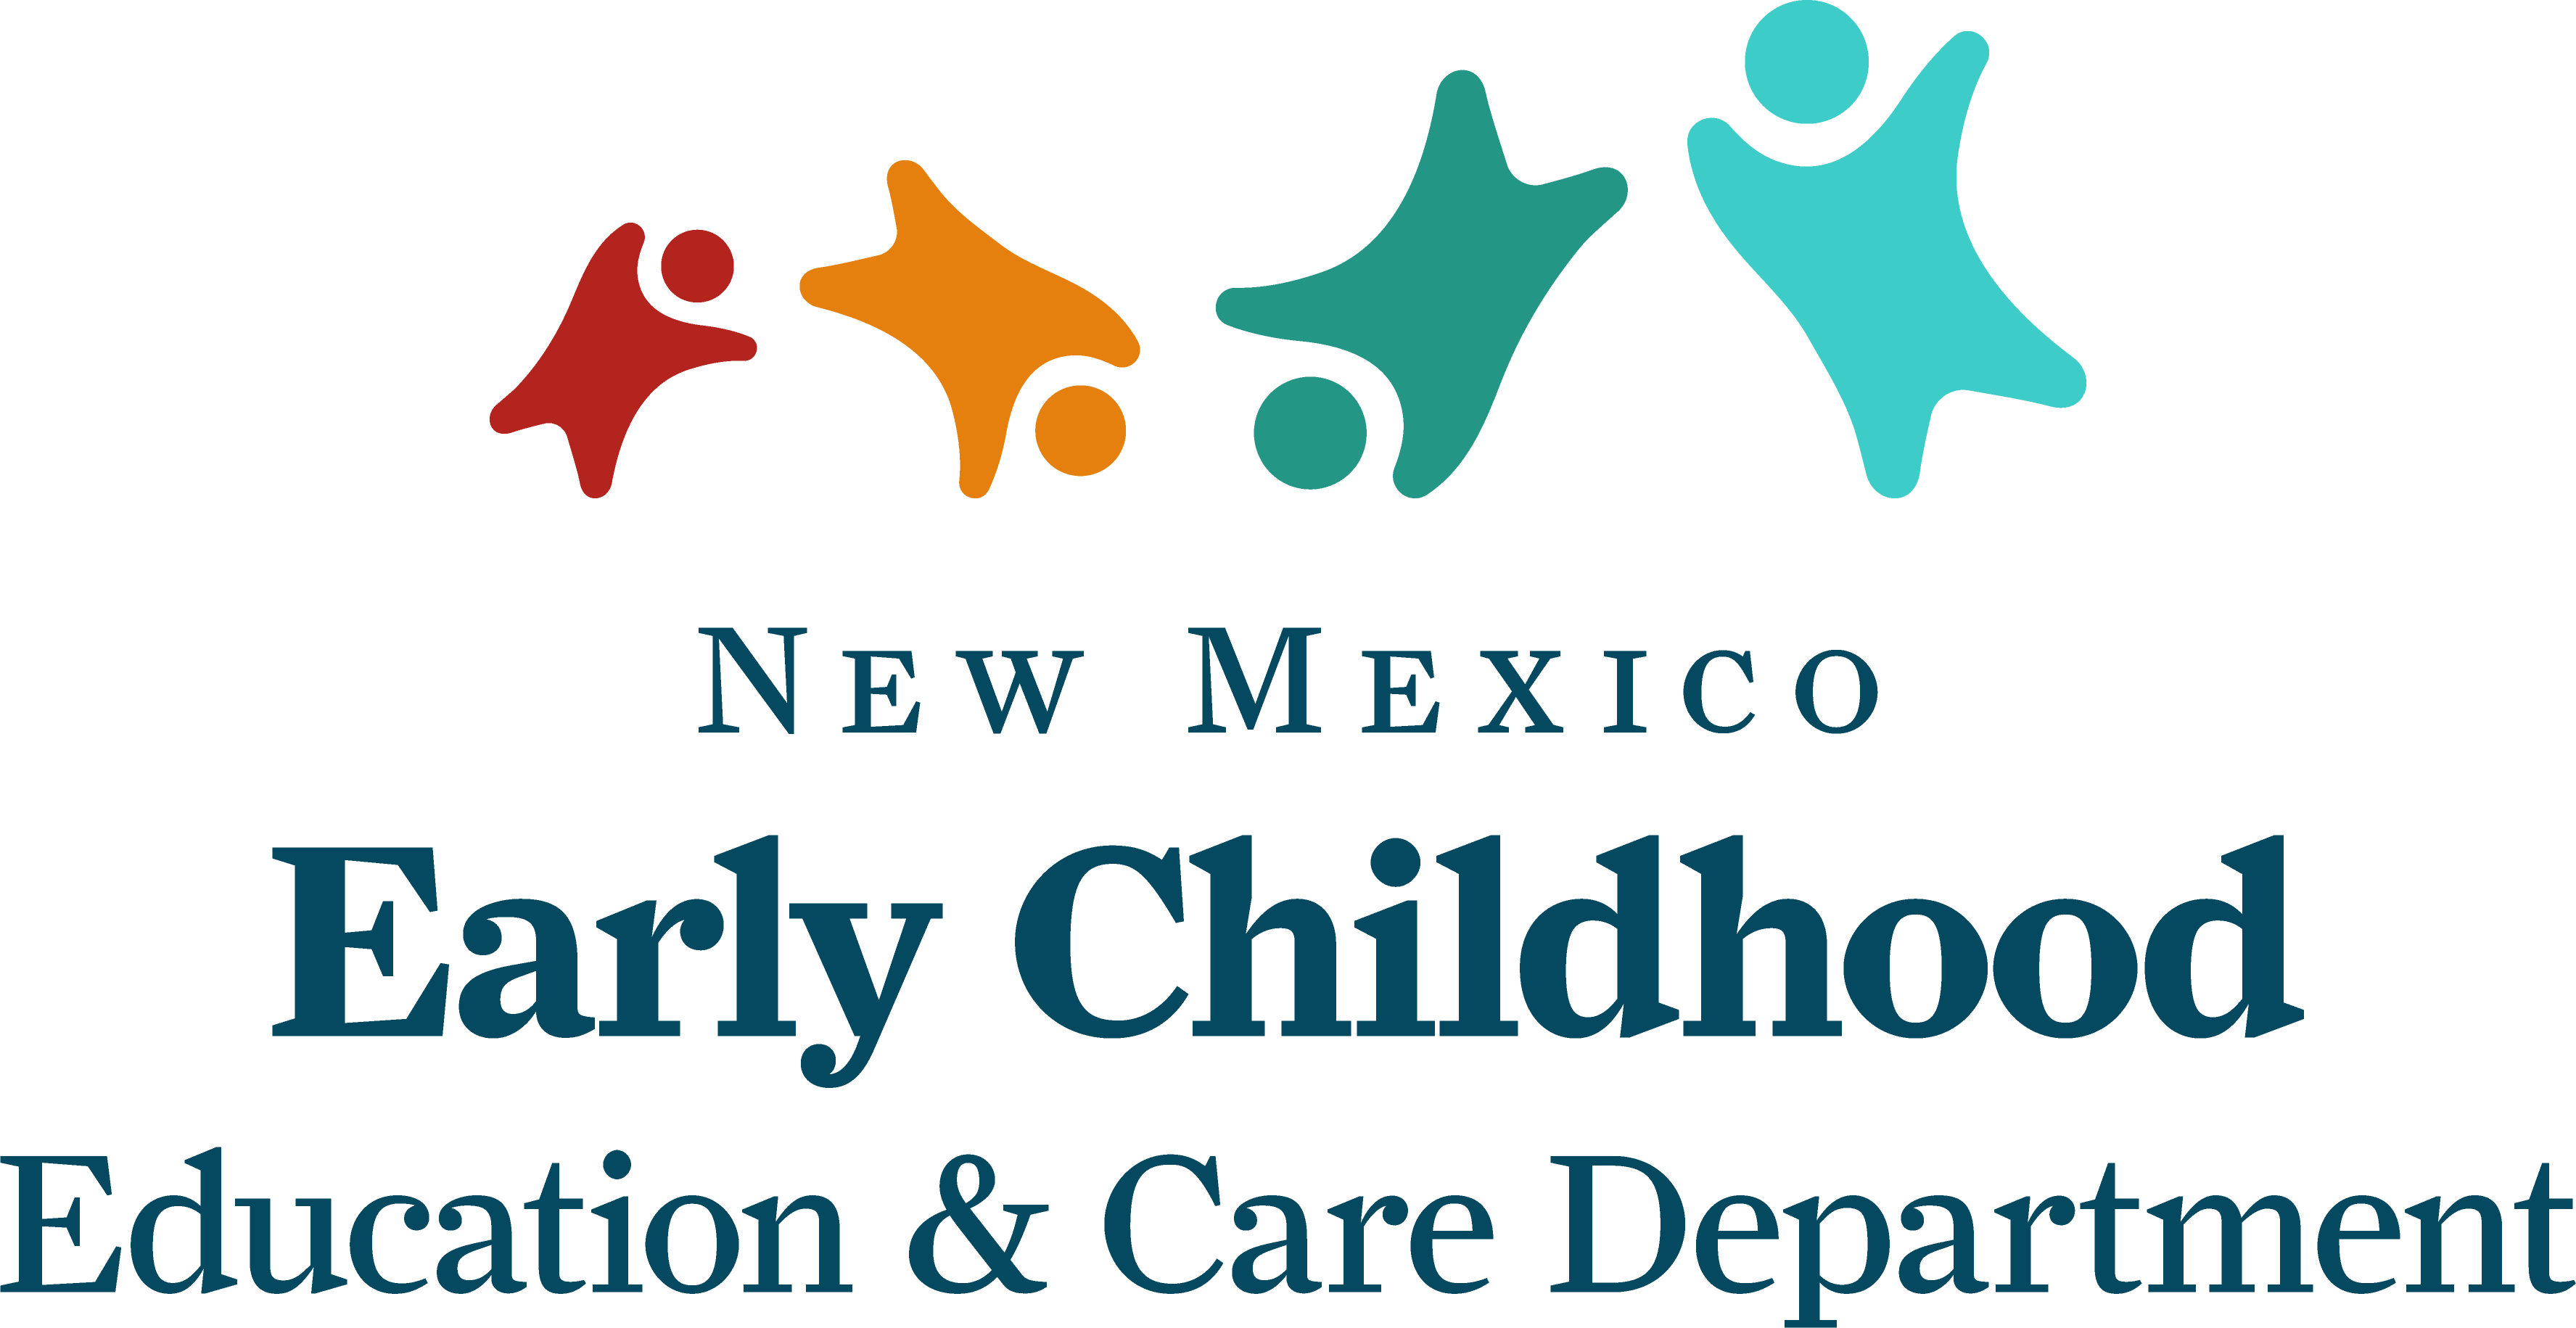 New Mexico Early Childhood Education & Care Department Logo